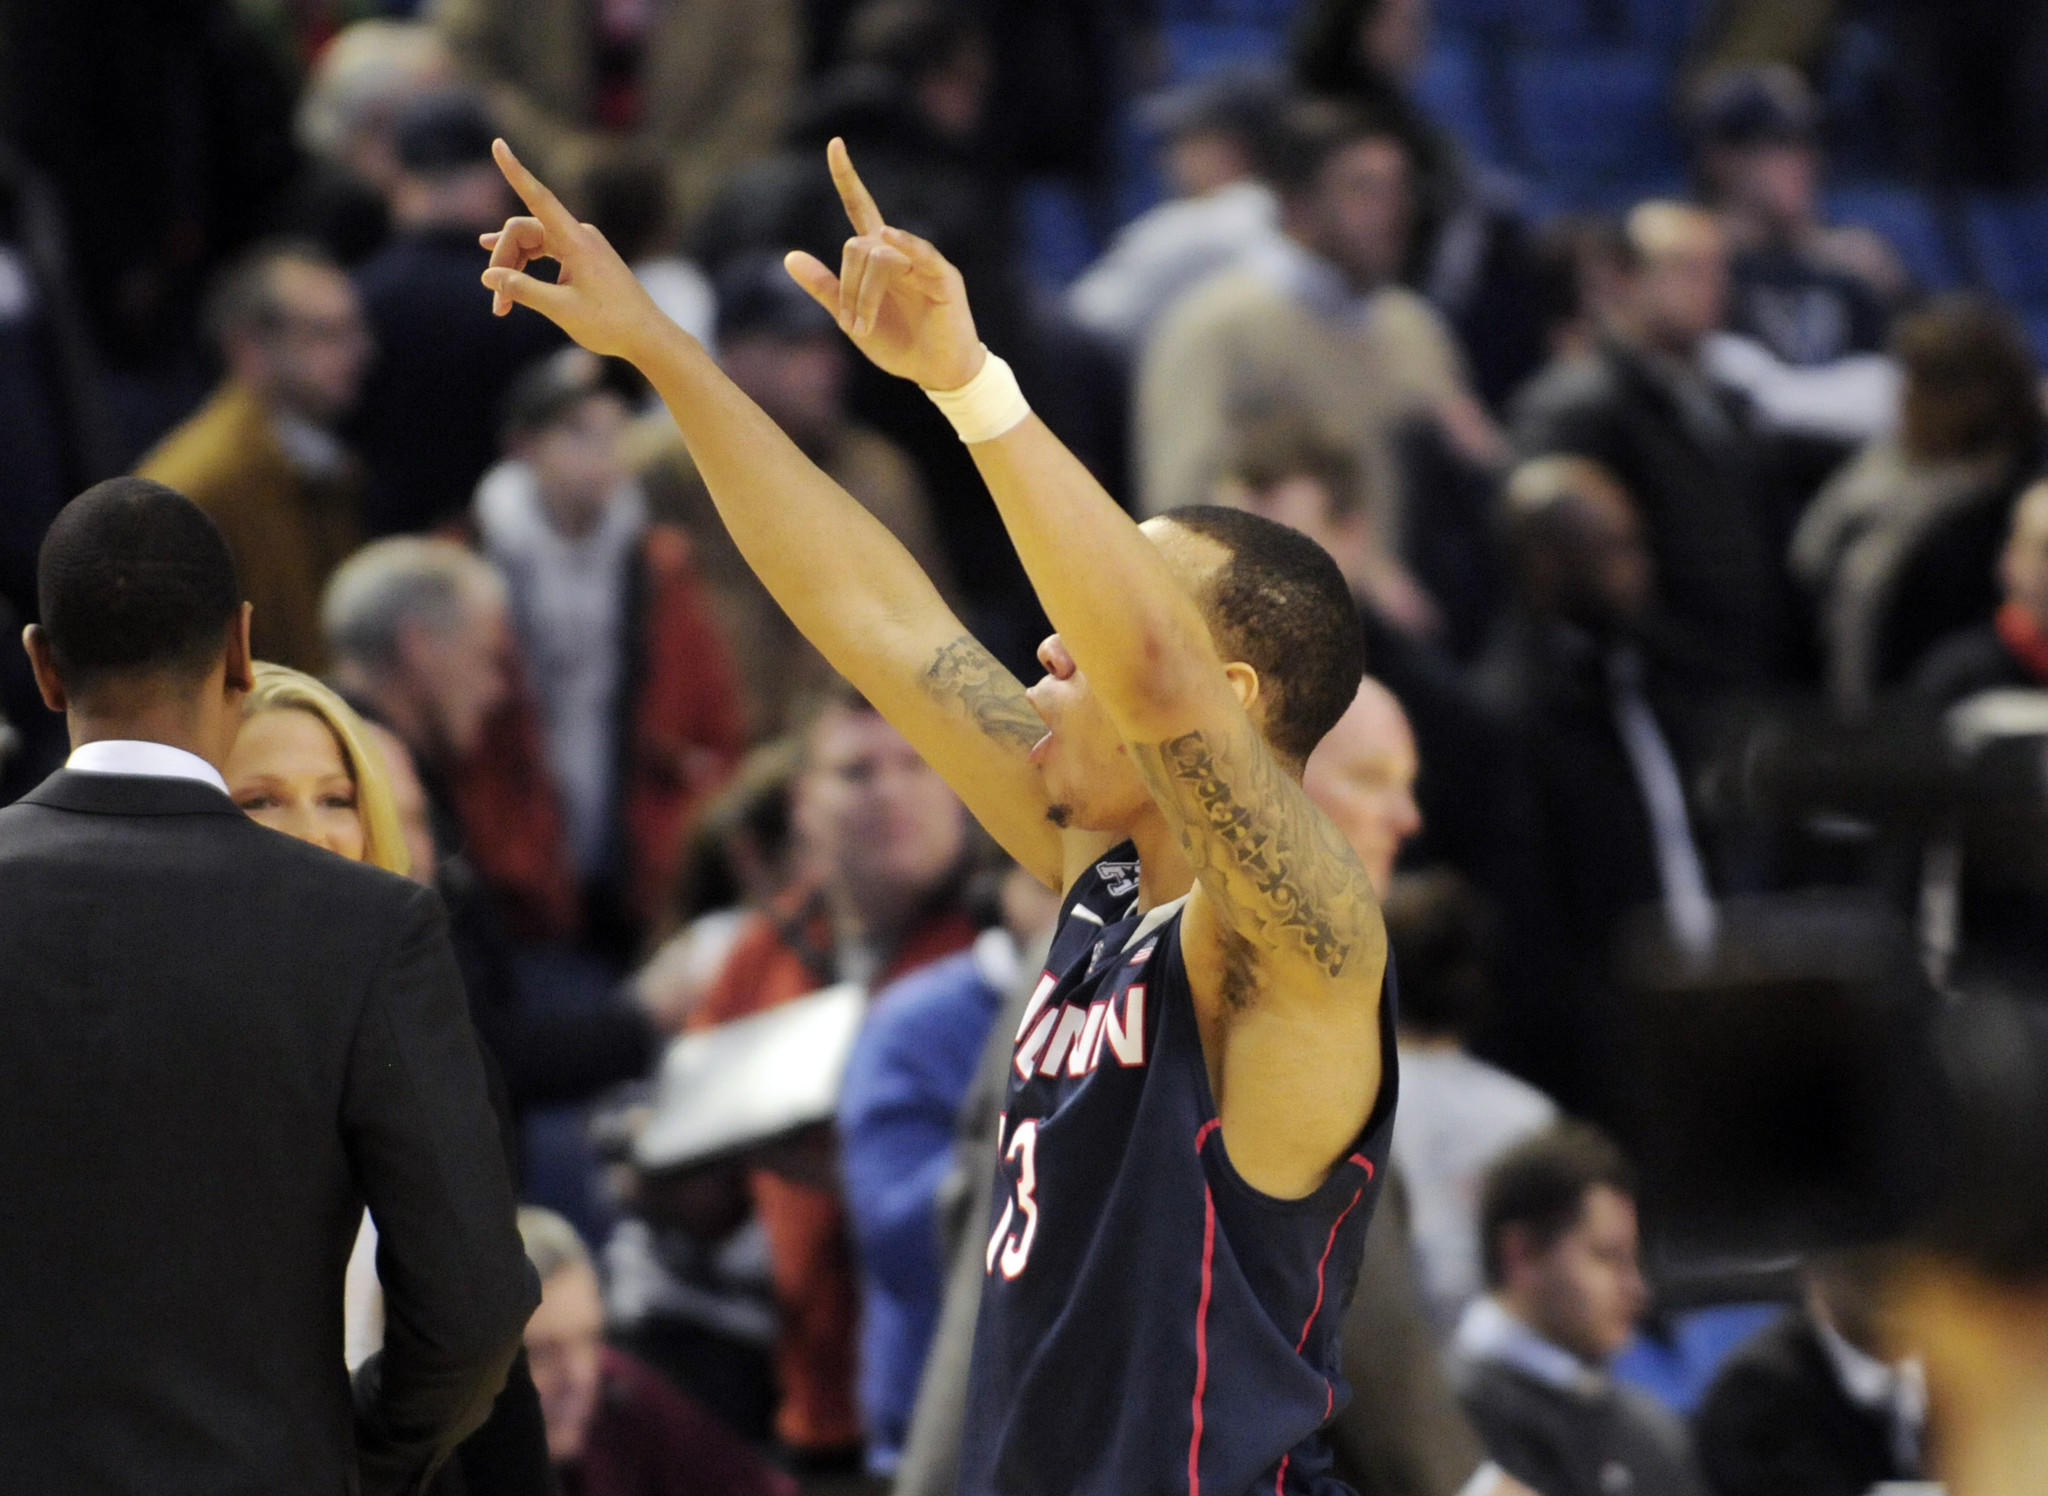 Shabazz Napier signals his fans at the end of the game. UConn met their old Big East rival. Villanova in the 3rd round of the NCAA tournament Saturday night at the First Niagara Center and won, 77-65 and will continue to the Sweet-16.